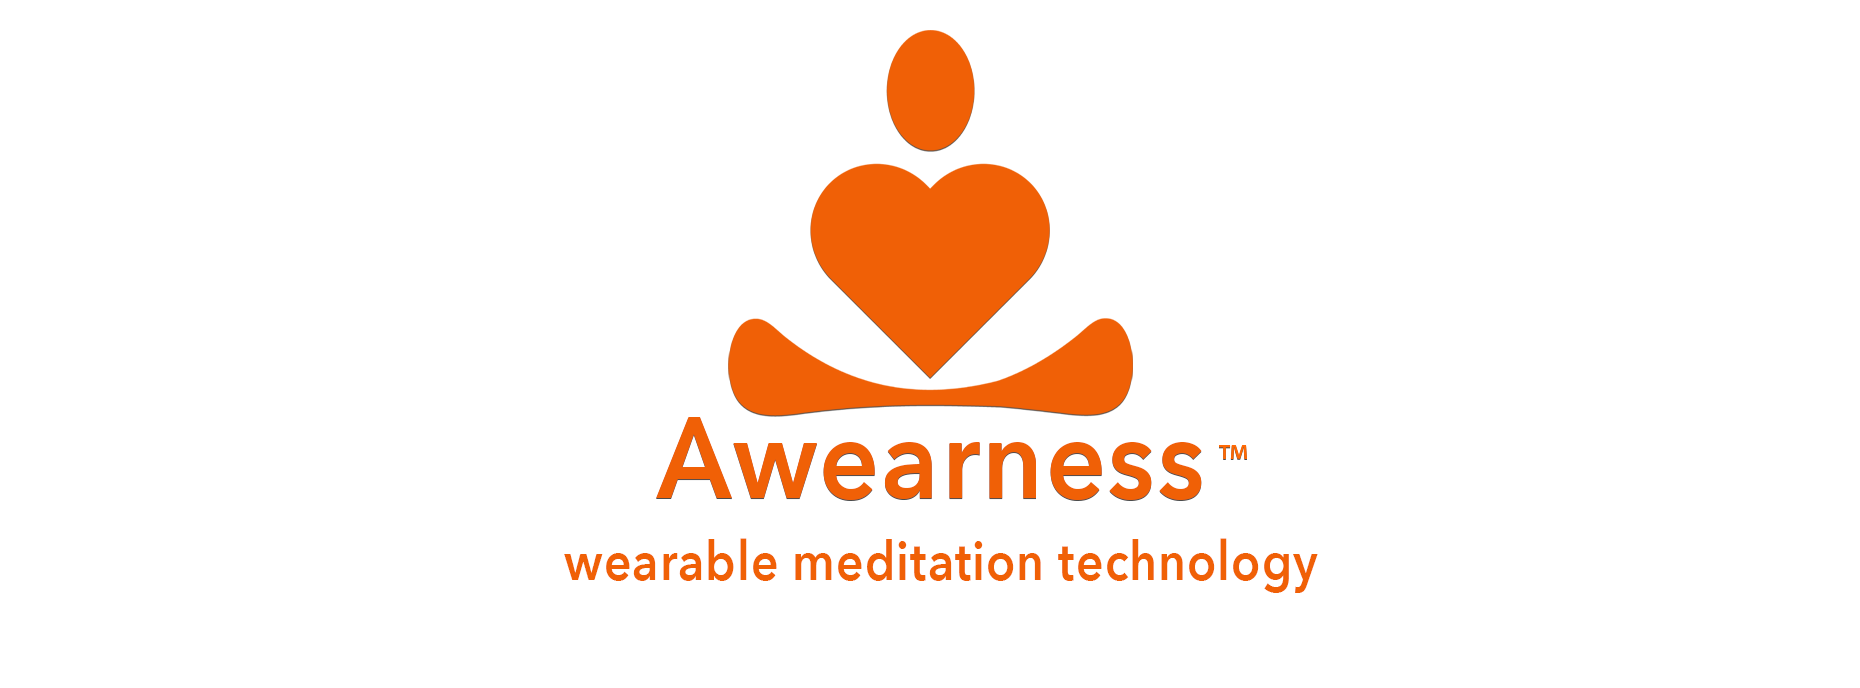 Awearness - Wearable Meditation Technology